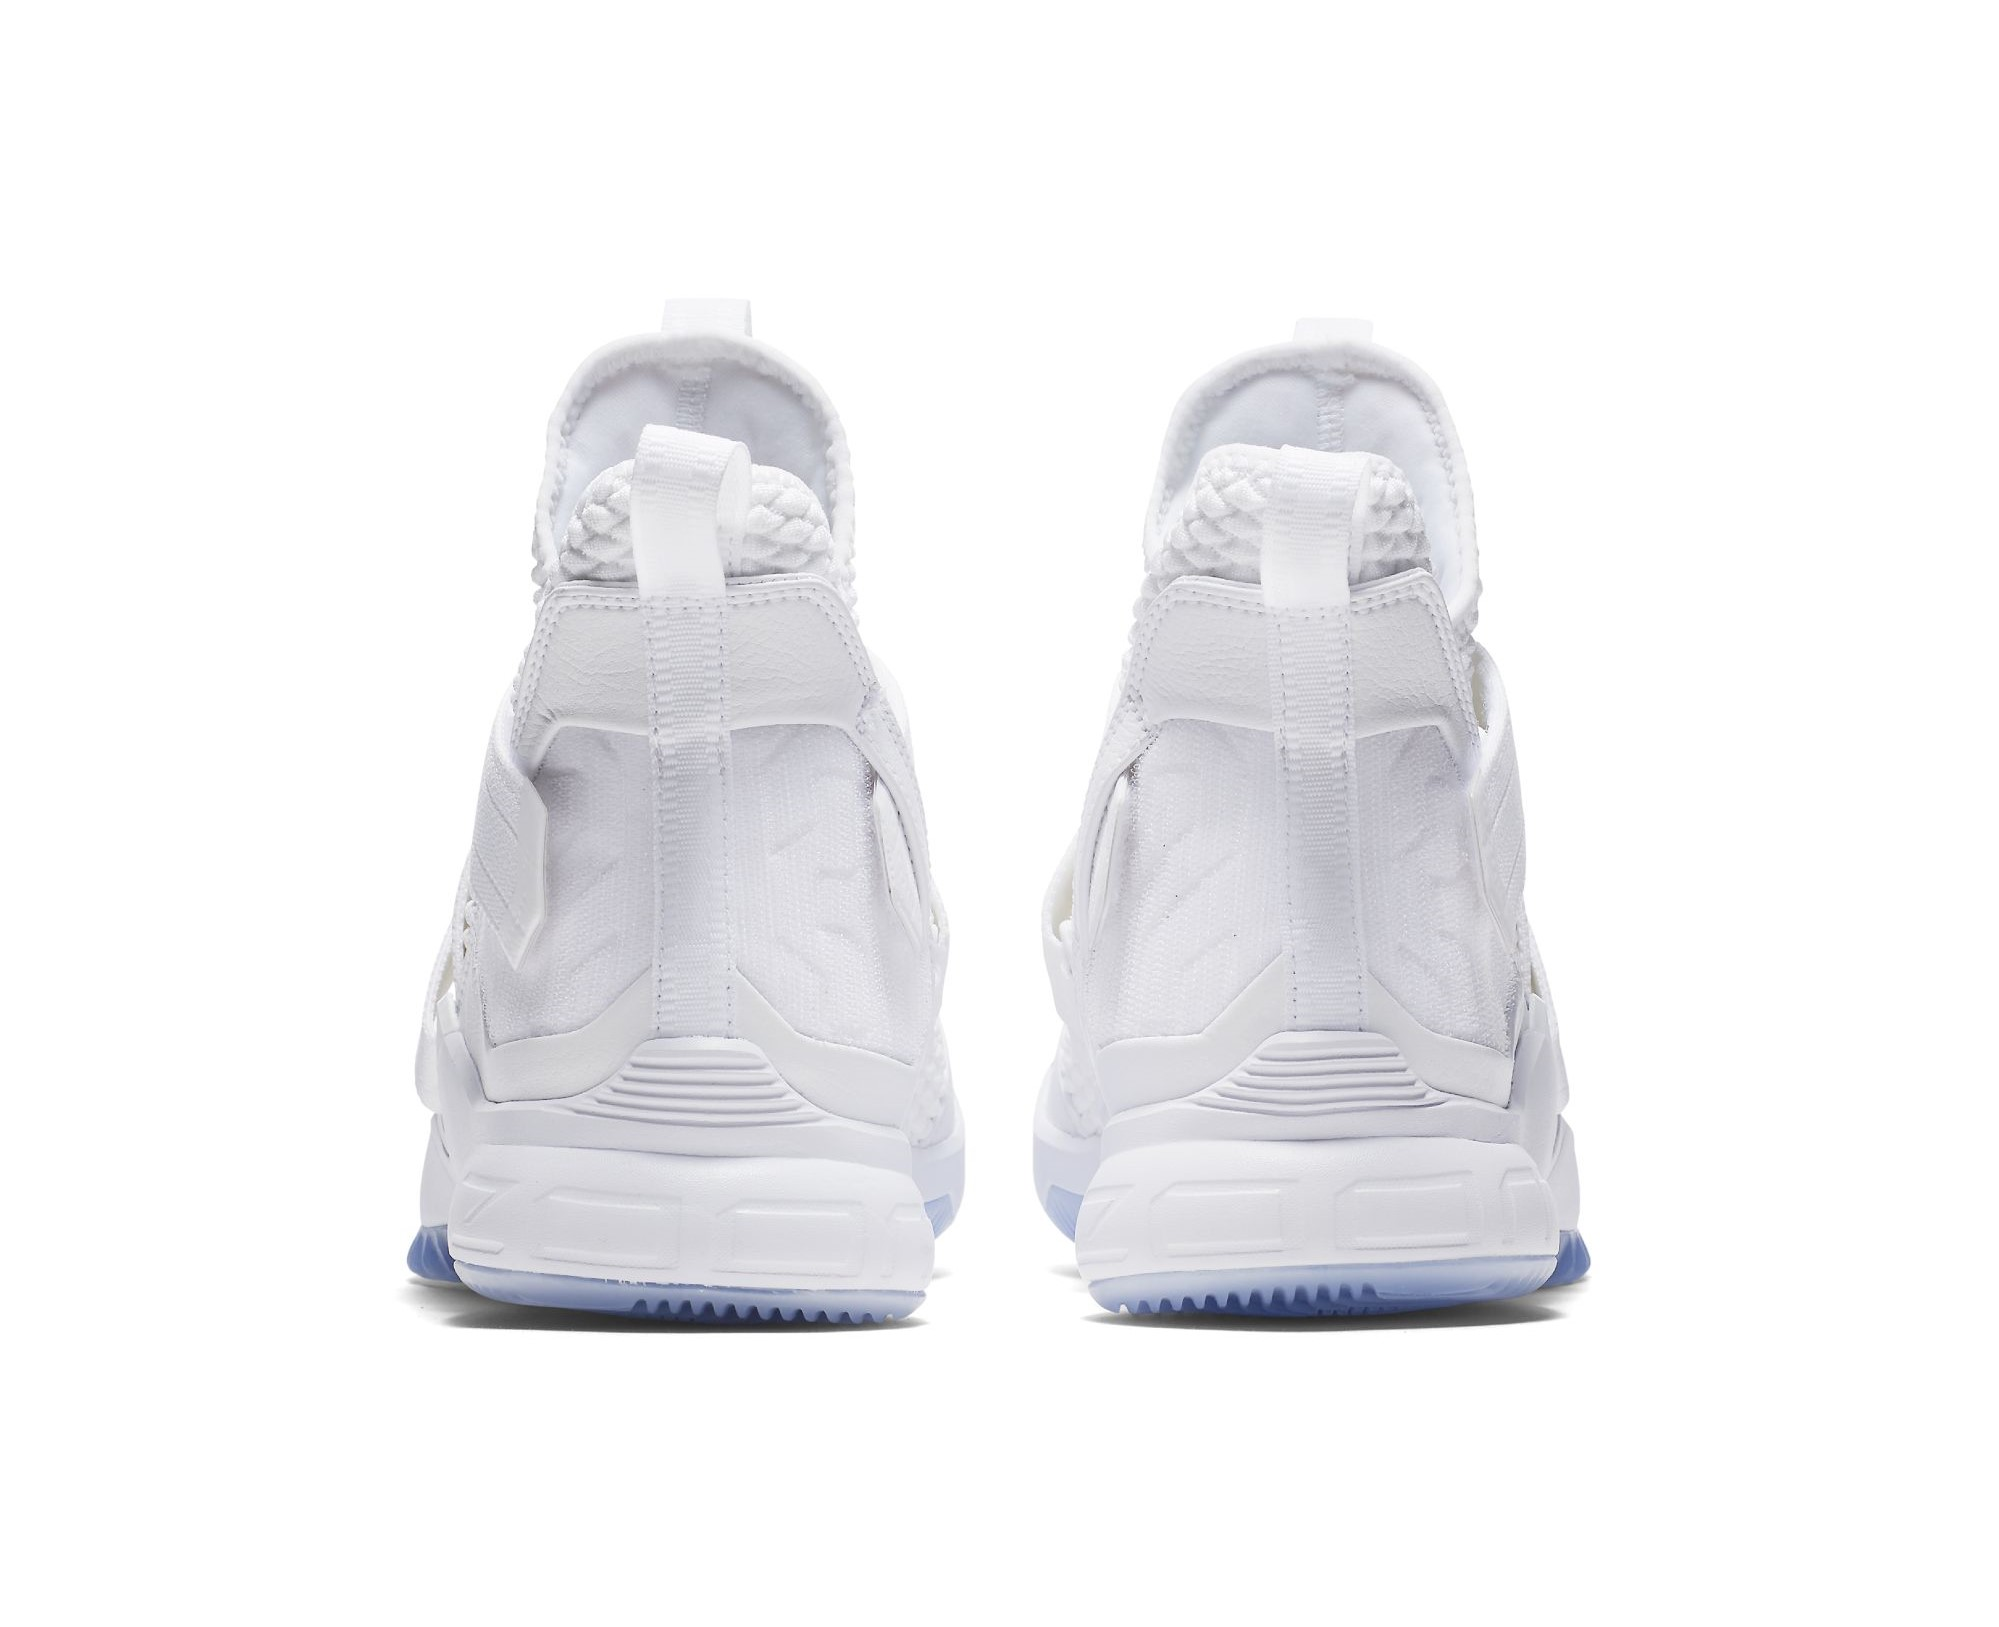 newest 696e4 d74b6 The Nike LeBron Soldier 12 'Triple White' Releases Next ...